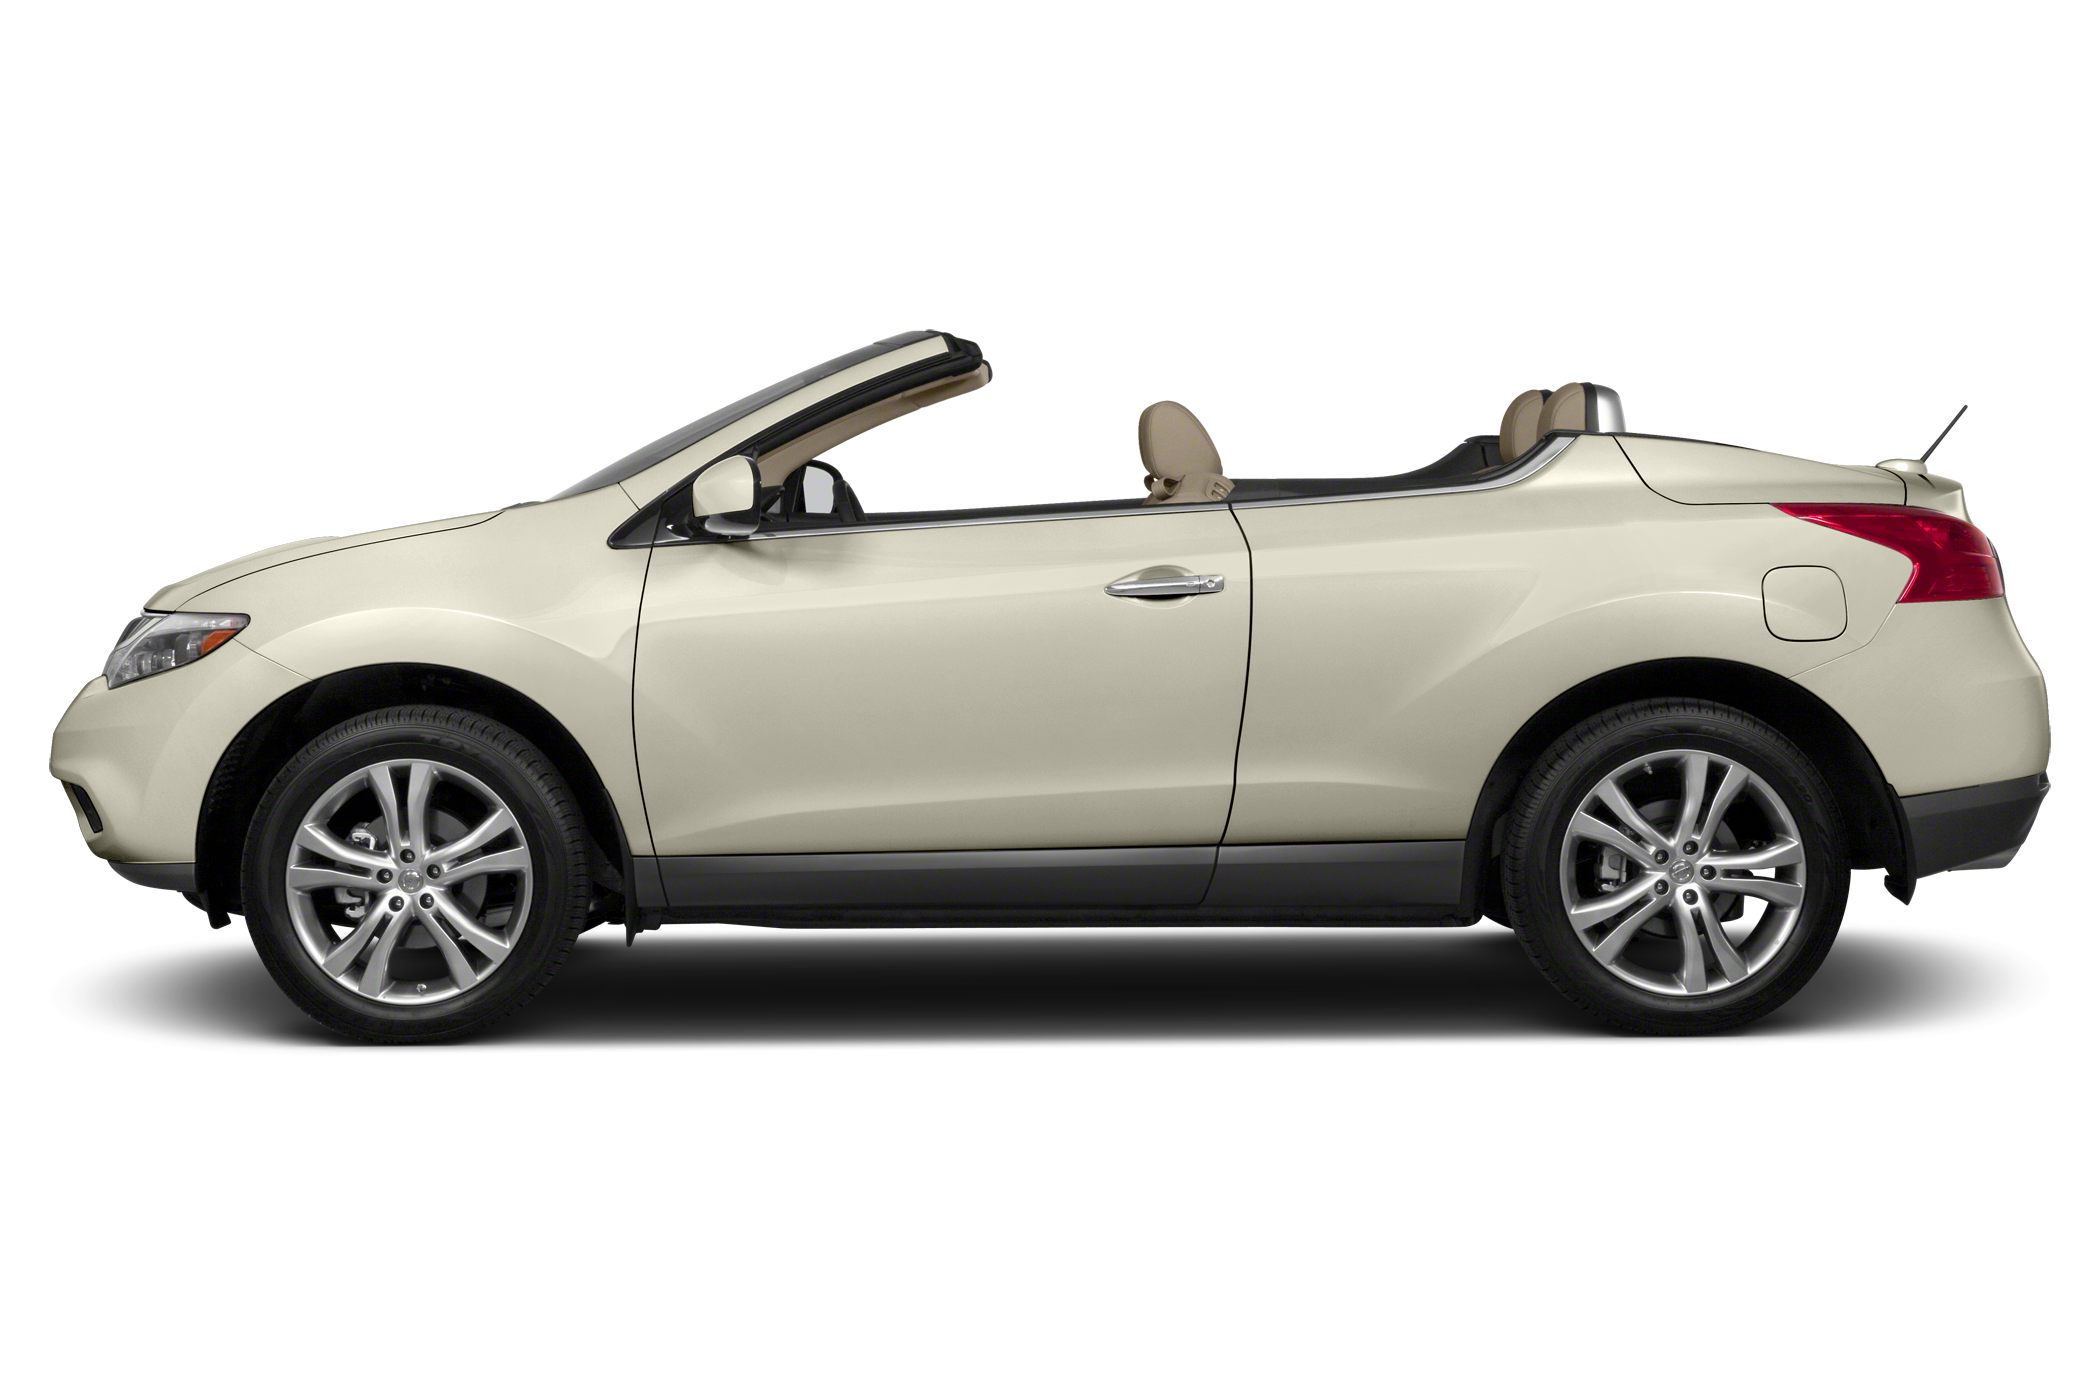 2016 nissan murano cabriolet pictures information and specs auto. Black Bedroom Furniture Sets. Home Design Ideas